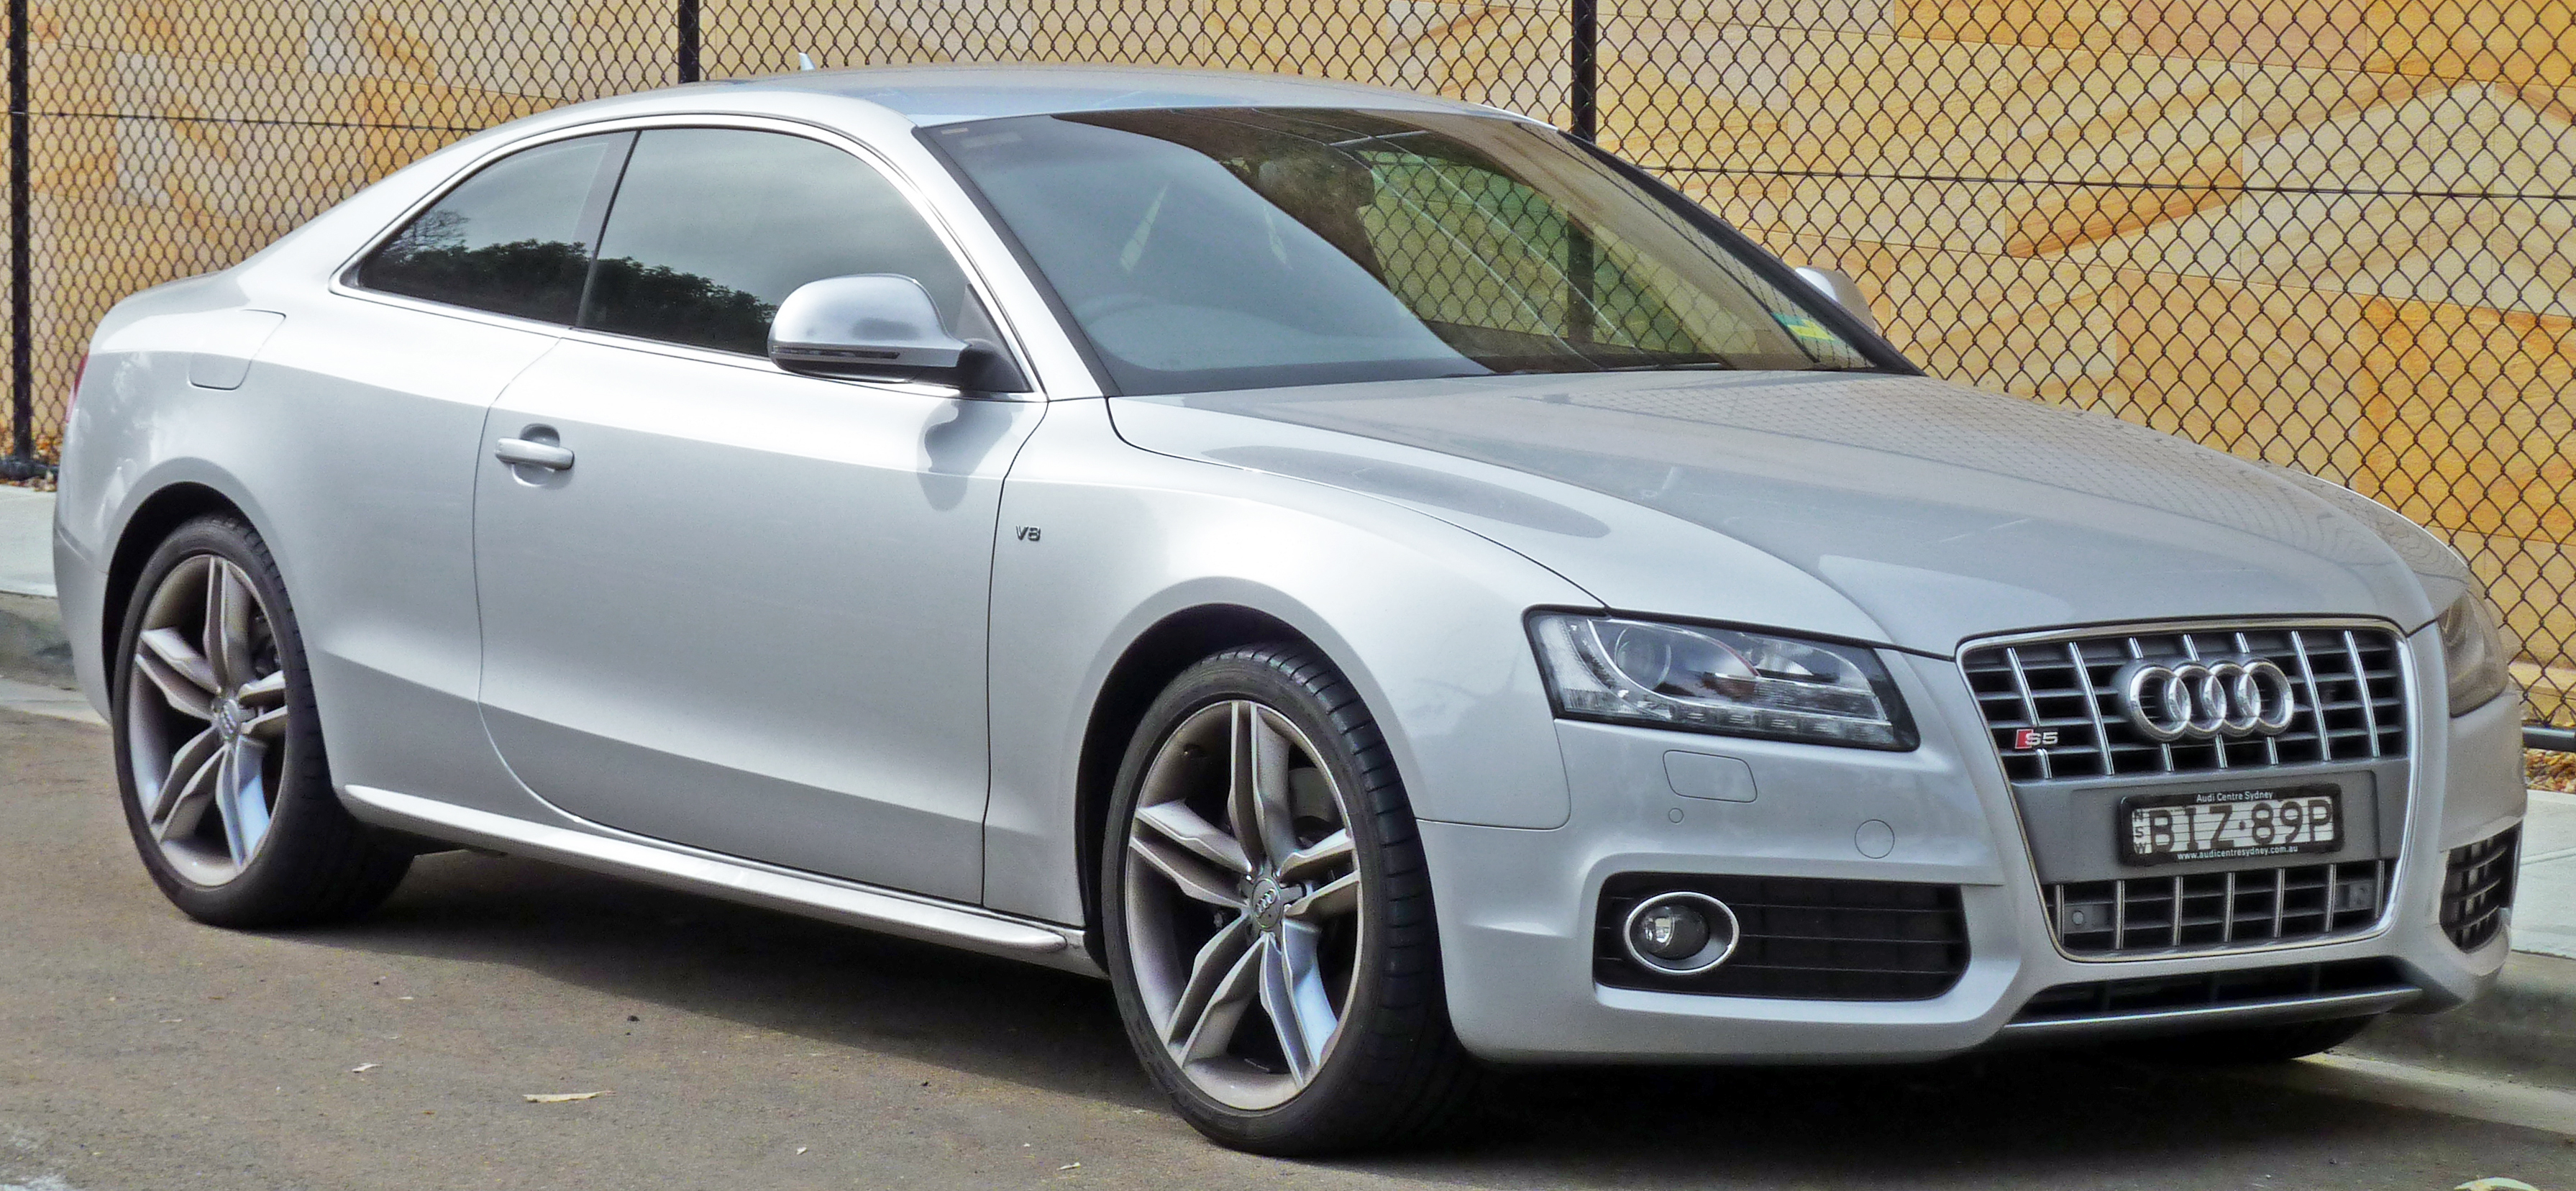 april wikipedia diesel tdi sportback quattro registered wiki uk audi used